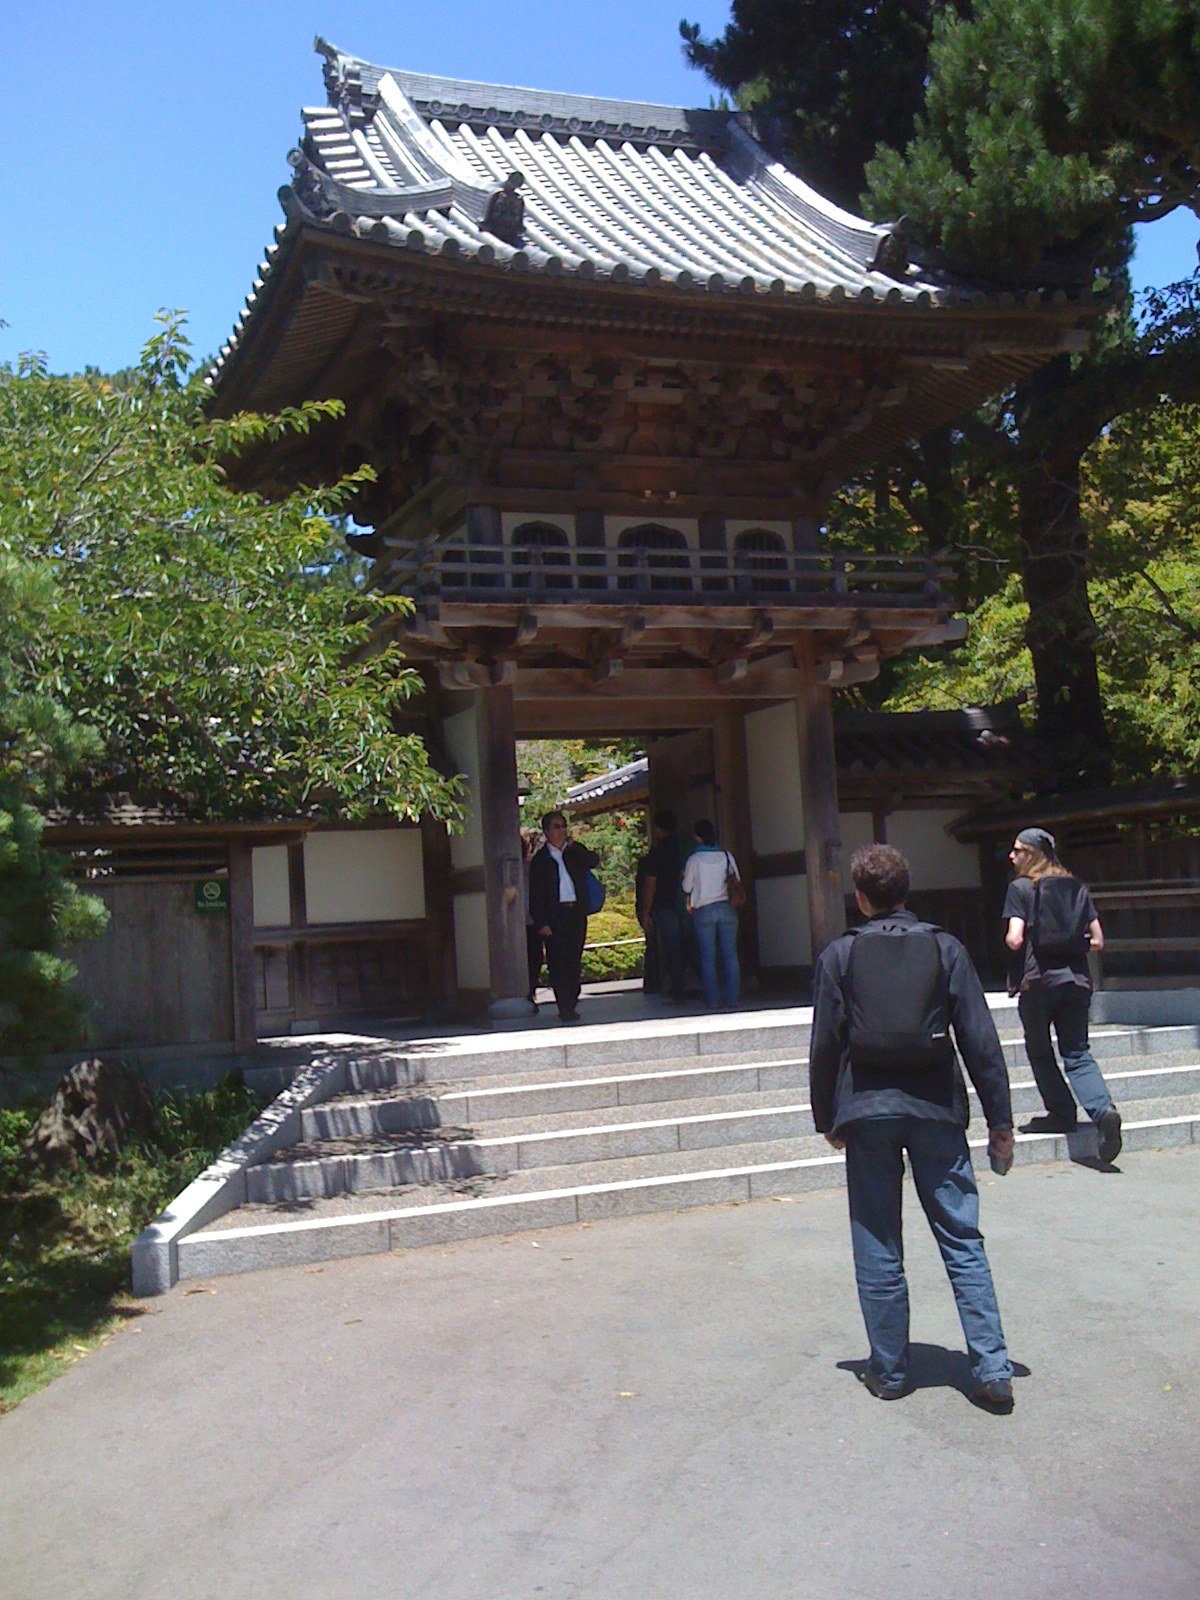 Gate to the Japanese Gardens